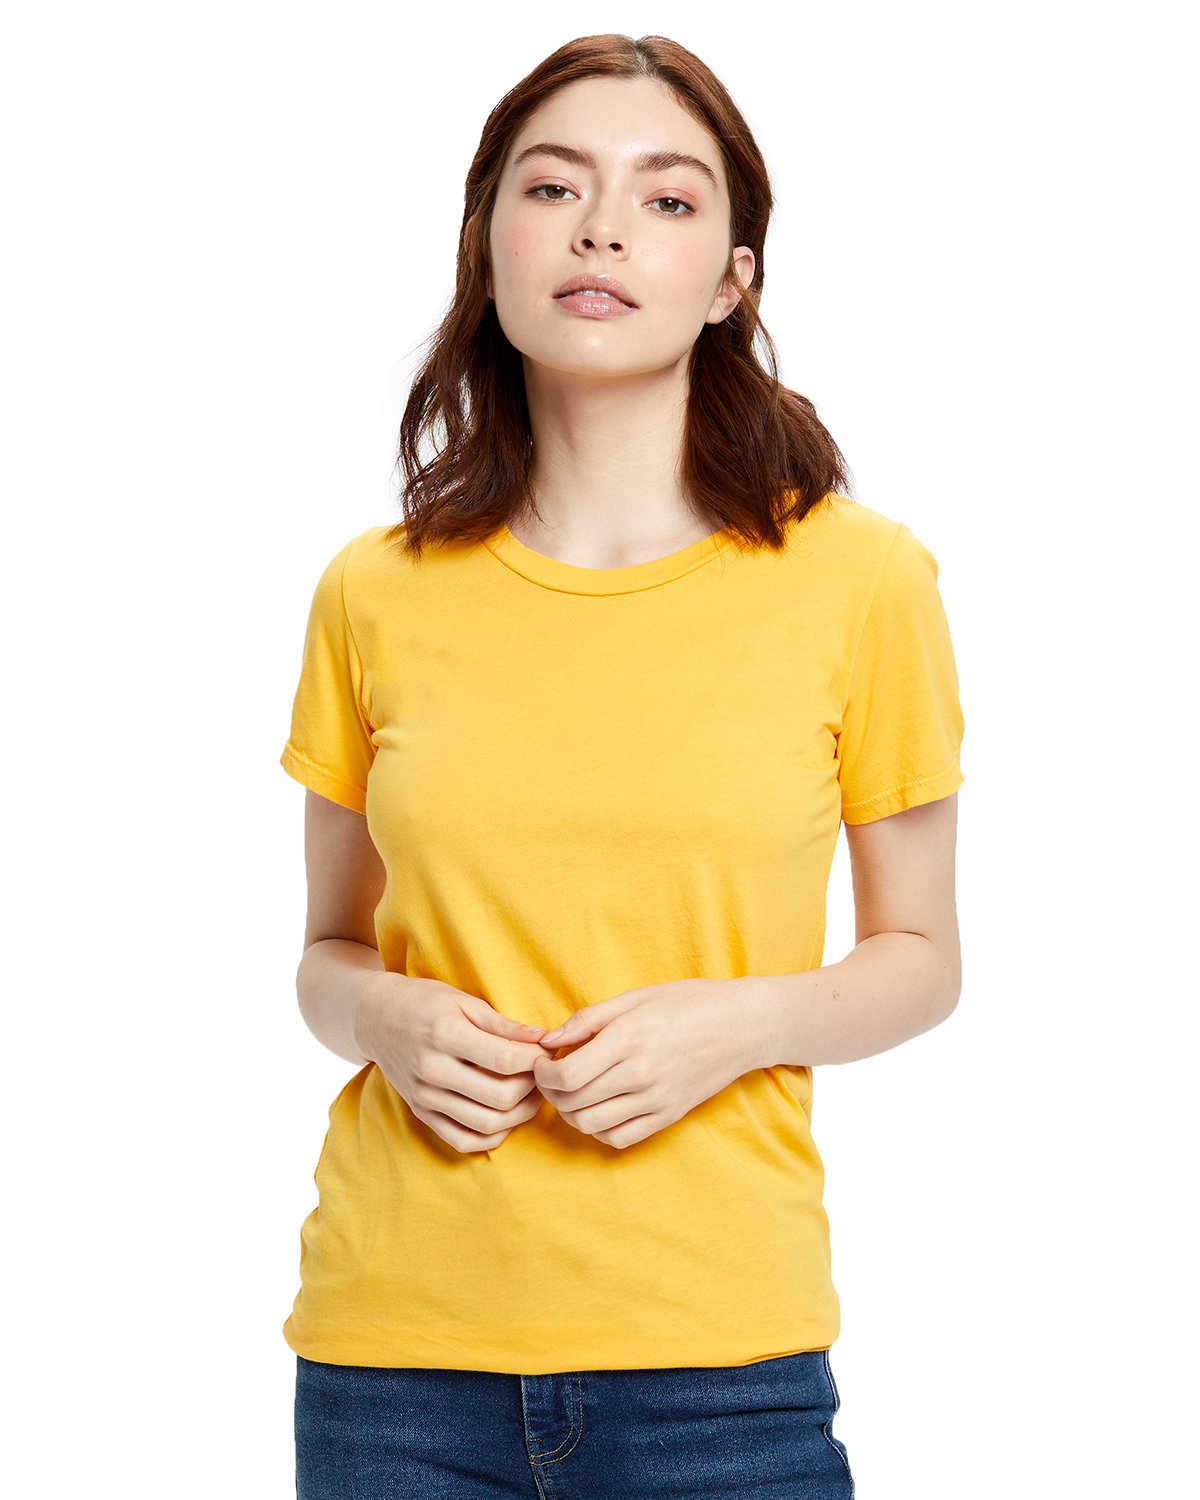 US Blanks Ladies' Made in USA Short Sleeve Crew T-Shirt GOLD